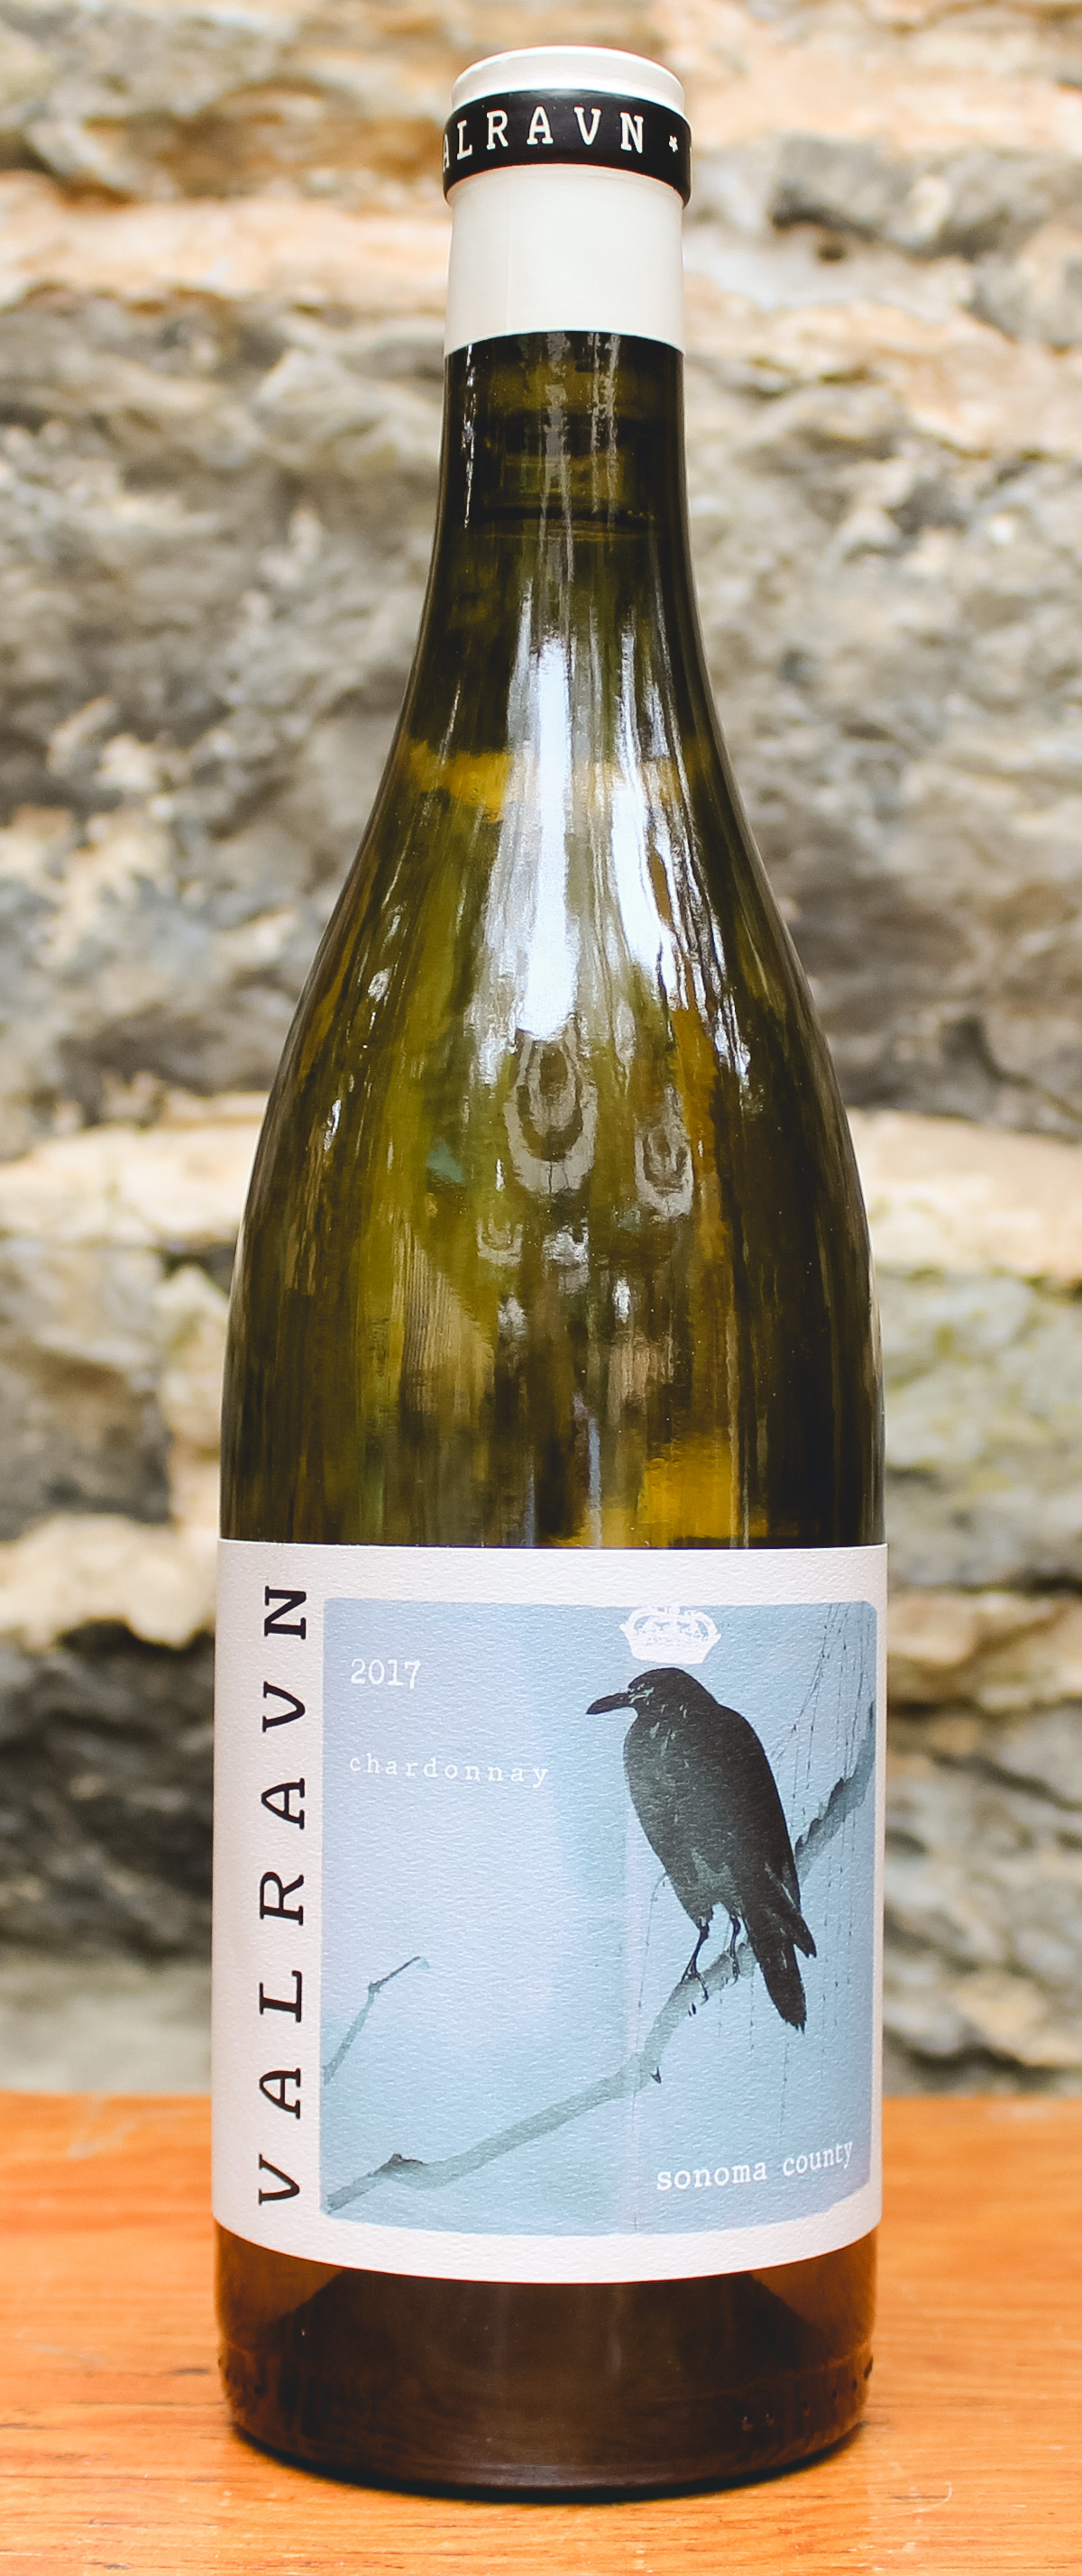 Valravn Chardonnay 2017 - Origin: California Retail: $23.95 | Sale: $21.55Cold climate vineyards in the Sonoma Coast provide a core of minerality, ripe peach, and apple with a touch of citrus. These fresh notes are balanced by richer flavors of toasted hazelnuts, and ripe pineapple that come from the barrel fermented Russian River component. Overall, the Valravn Chardonnay walks the delicate line between high toned freshness, and the more powerful flavors of barrel fermented Chardonnay. This is a crowd-pleasing white and a great go-to for dinner parties with family or friends!Chardonnay